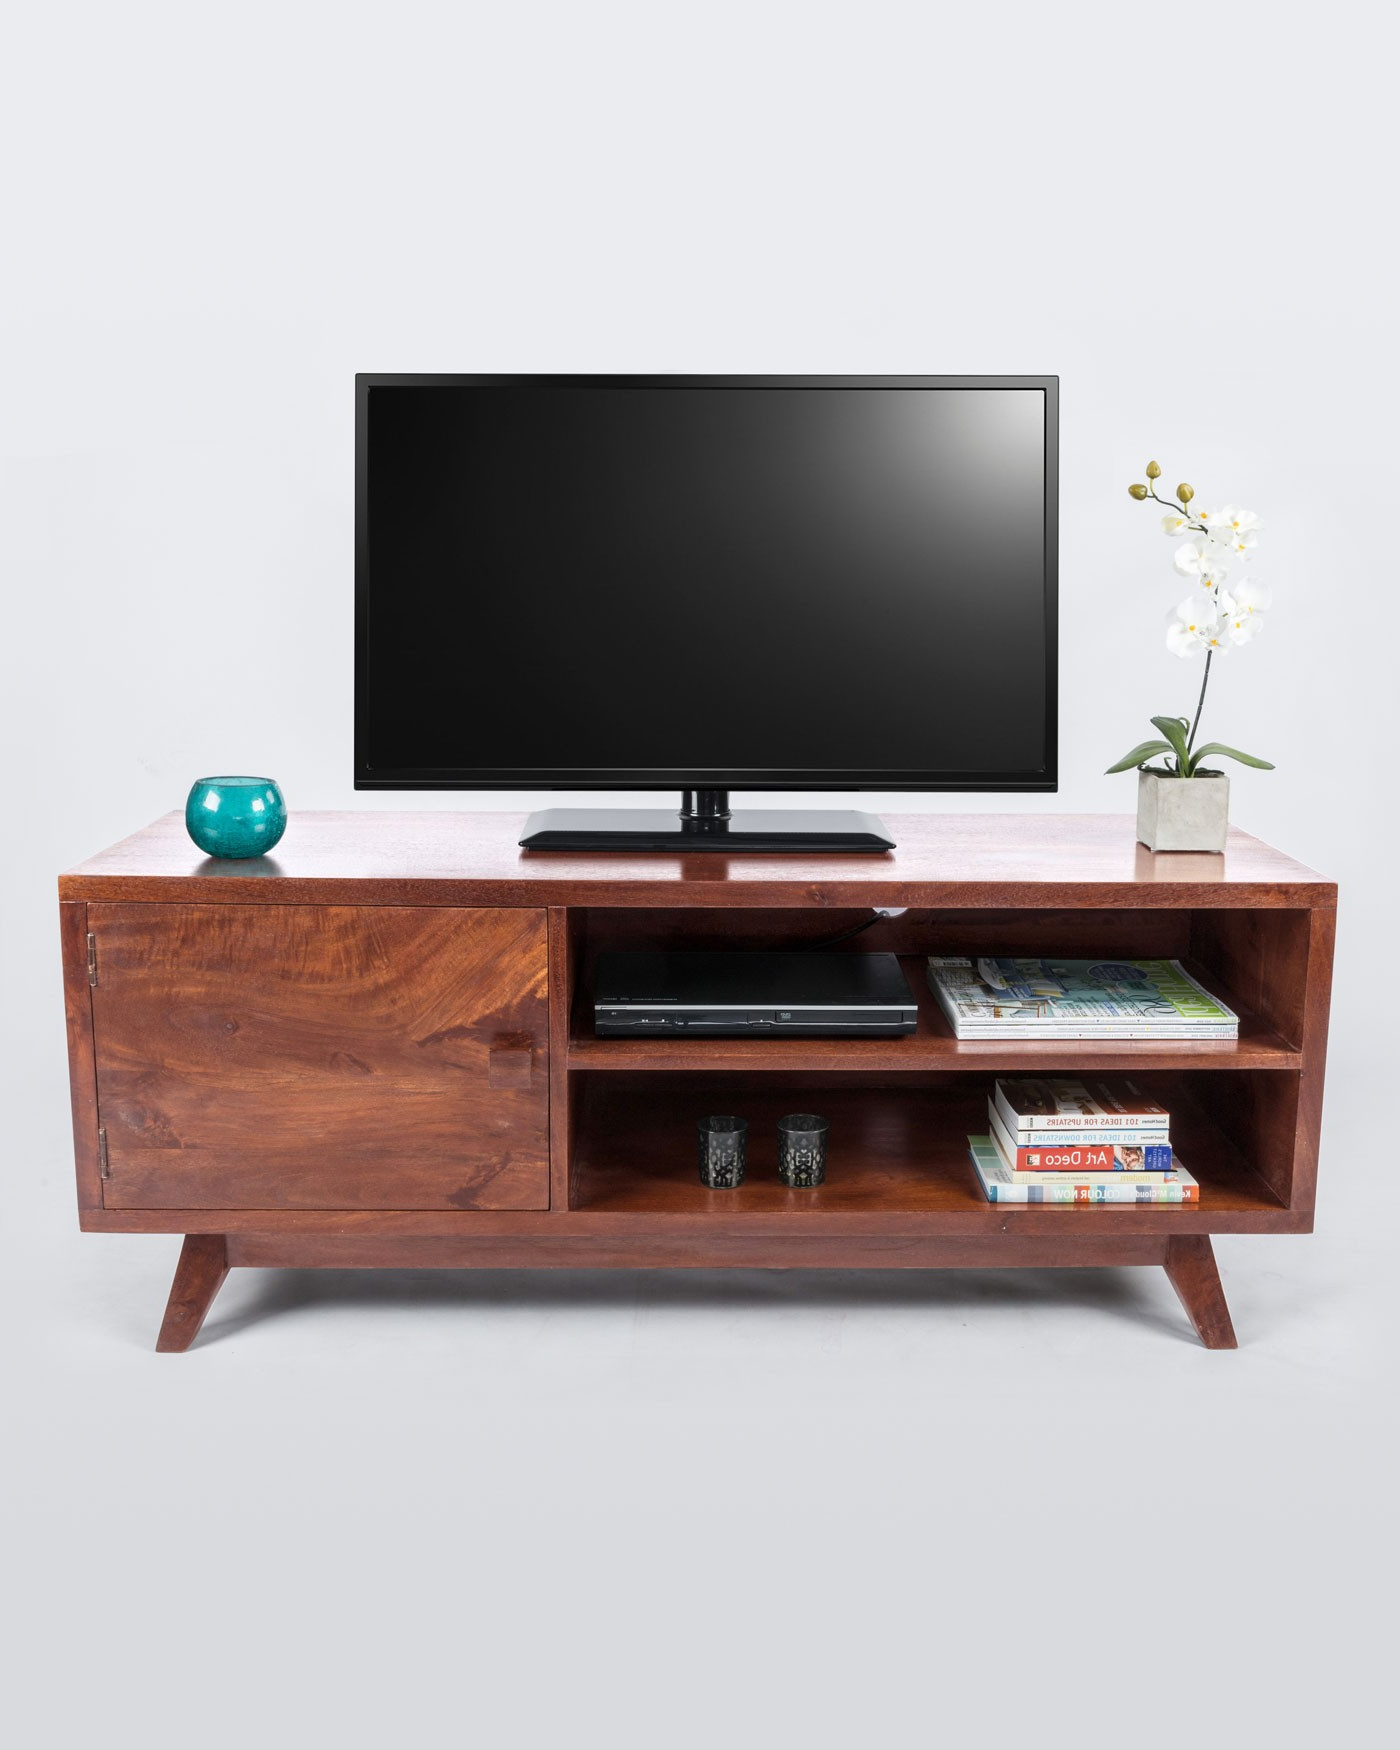 [%Dark Wood Tv Stand With Shelf Retro Design 100% Solid Wood – Homescapes Throughout Most Recent Dark Wood Tv Stands|Dark Wood Tv Stands For Famous Dark Wood Tv Stand With Shelf Retro Design 100% Solid Wood – Homescapes|Recent Dark Wood Tv Stands With Dark Wood Tv Stand With Shelf Retro Design 100% Solid Wood – Homescapes|Most Popular Dark Wood Tv Stand With Shelf Retro Design 100% Solid Wood – Homescapes Within Dark Wood Tv Stands%] (View 1 of 20)